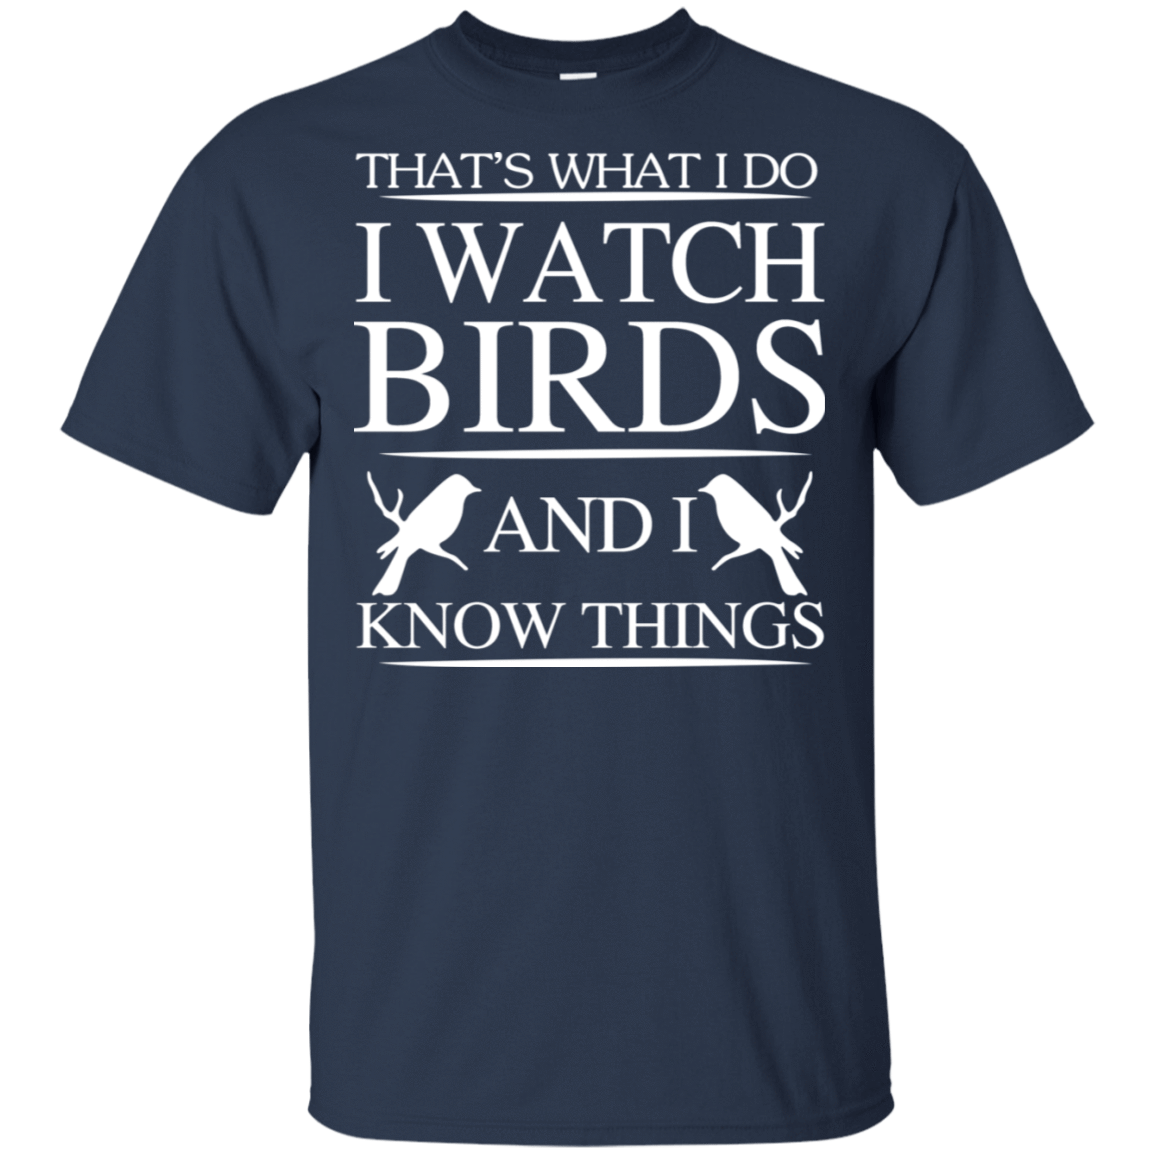 That's What I Do I Watch Birds And I Know Things 22-111-72789236-250 - Tee Ript